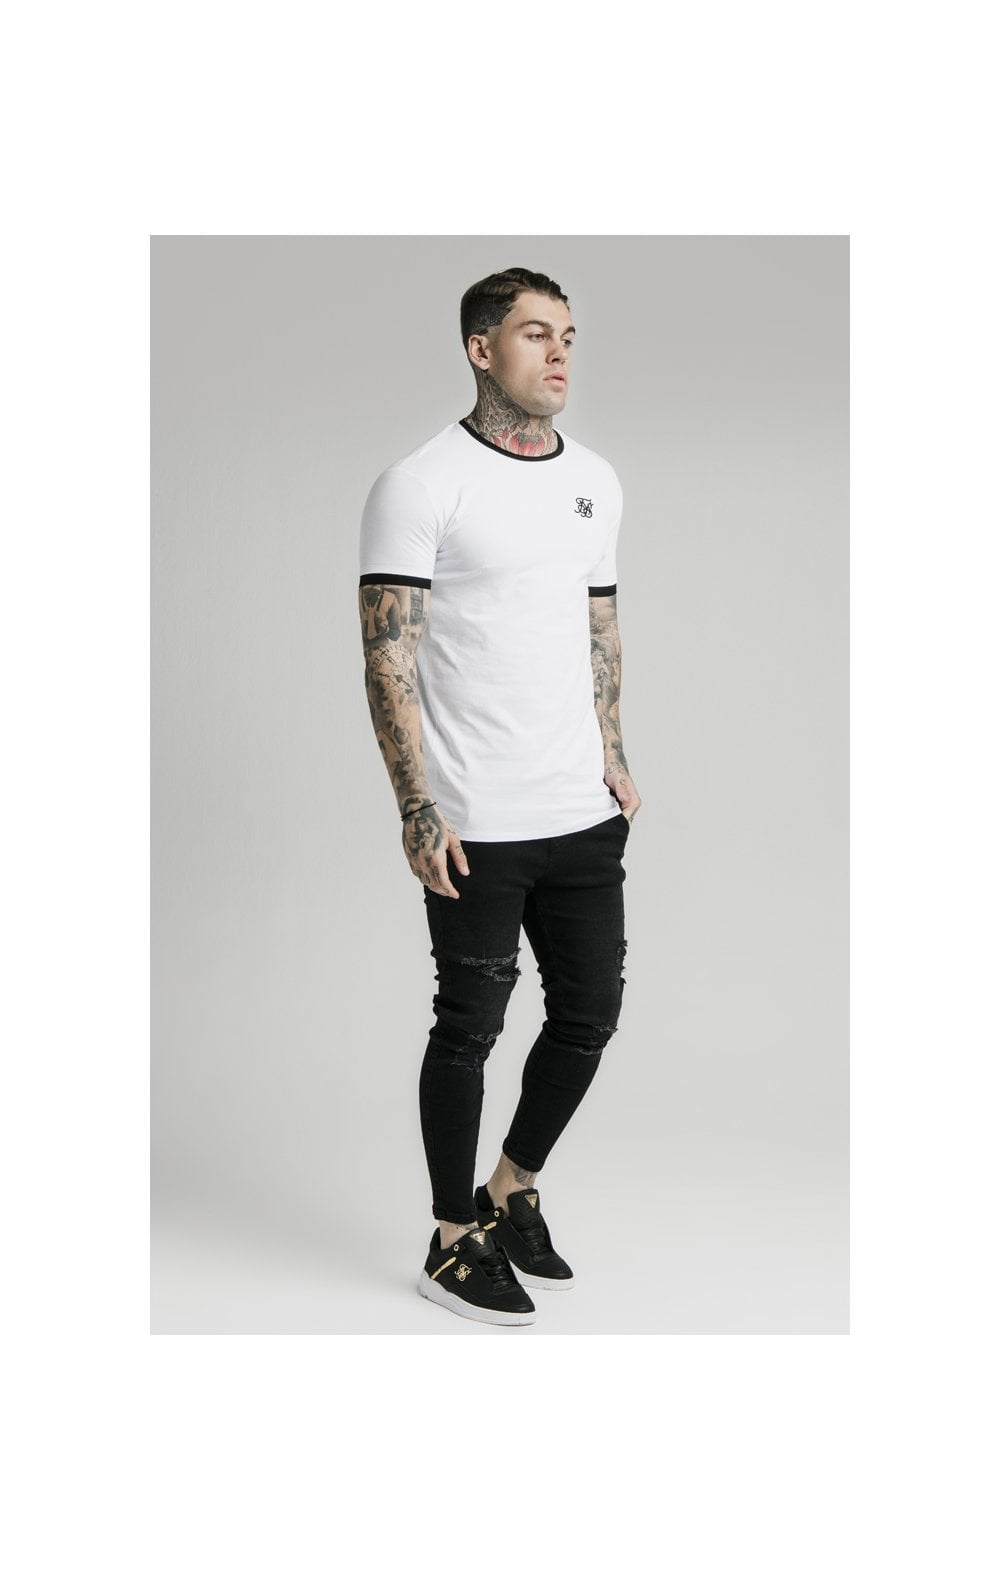 SikSilk S/S Inset Straight Hem Ringer Gym Tee – White (3)